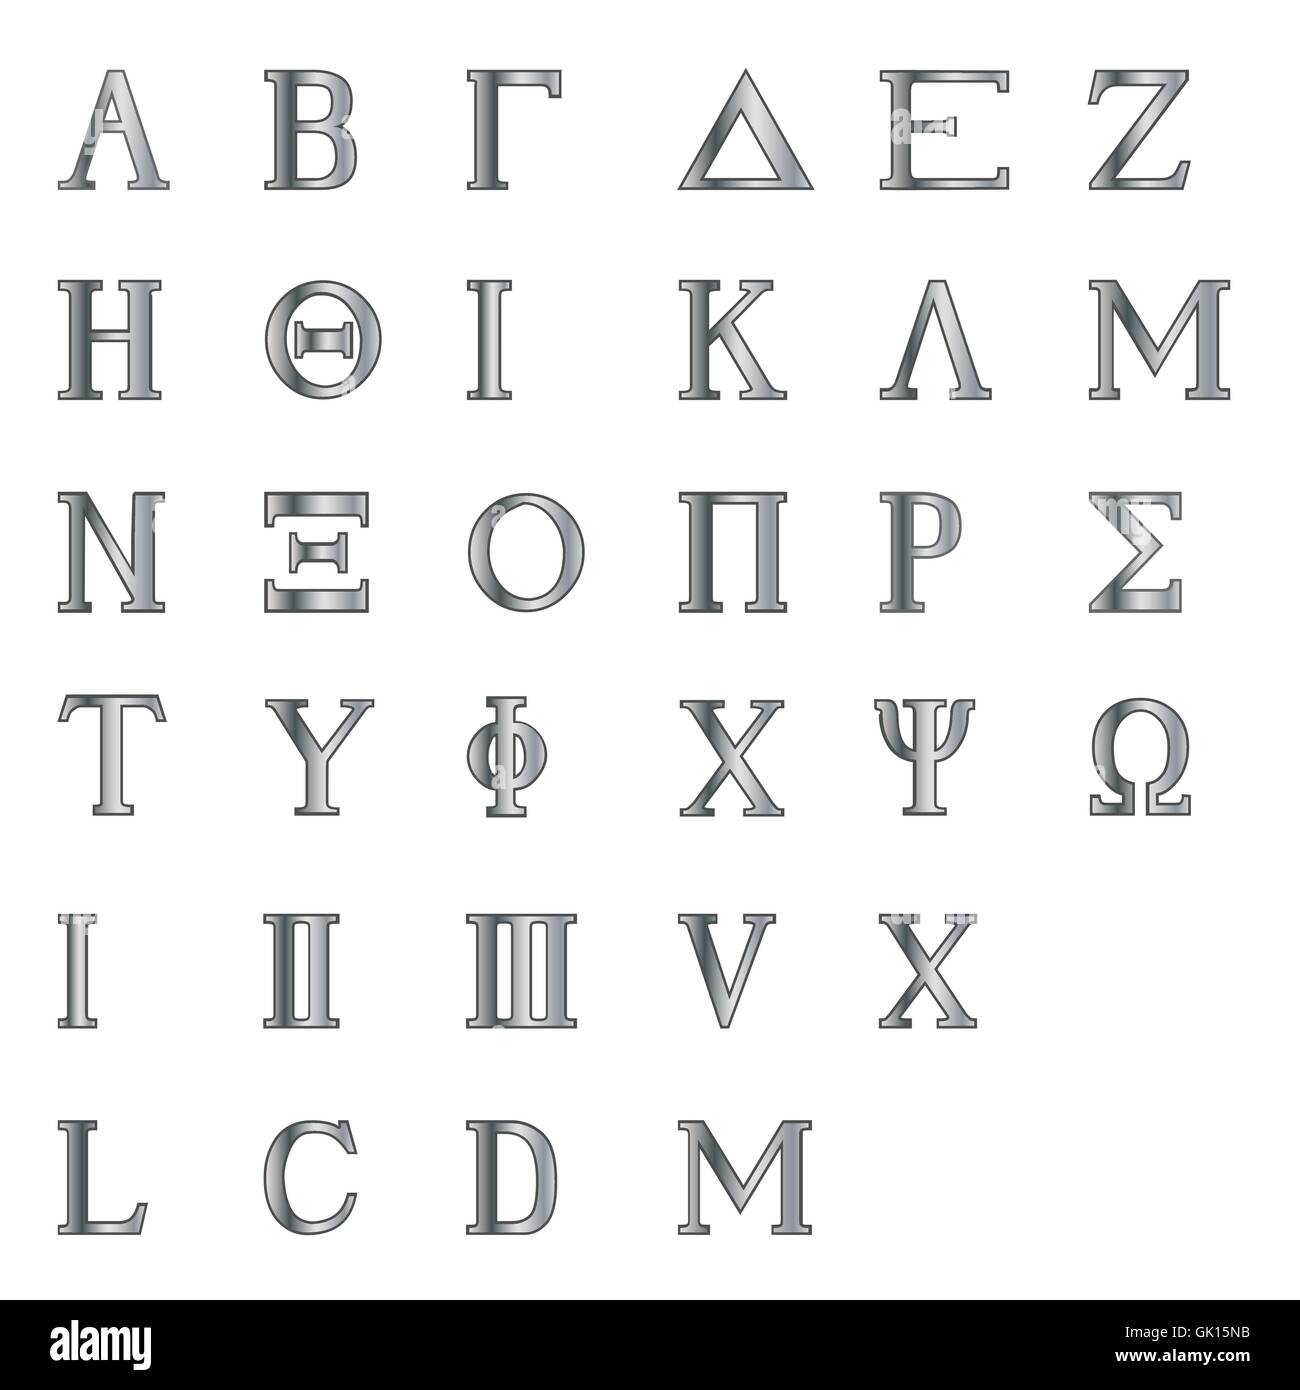 Greek Letters and Numbers Stock Vector Art & Illustration Vector